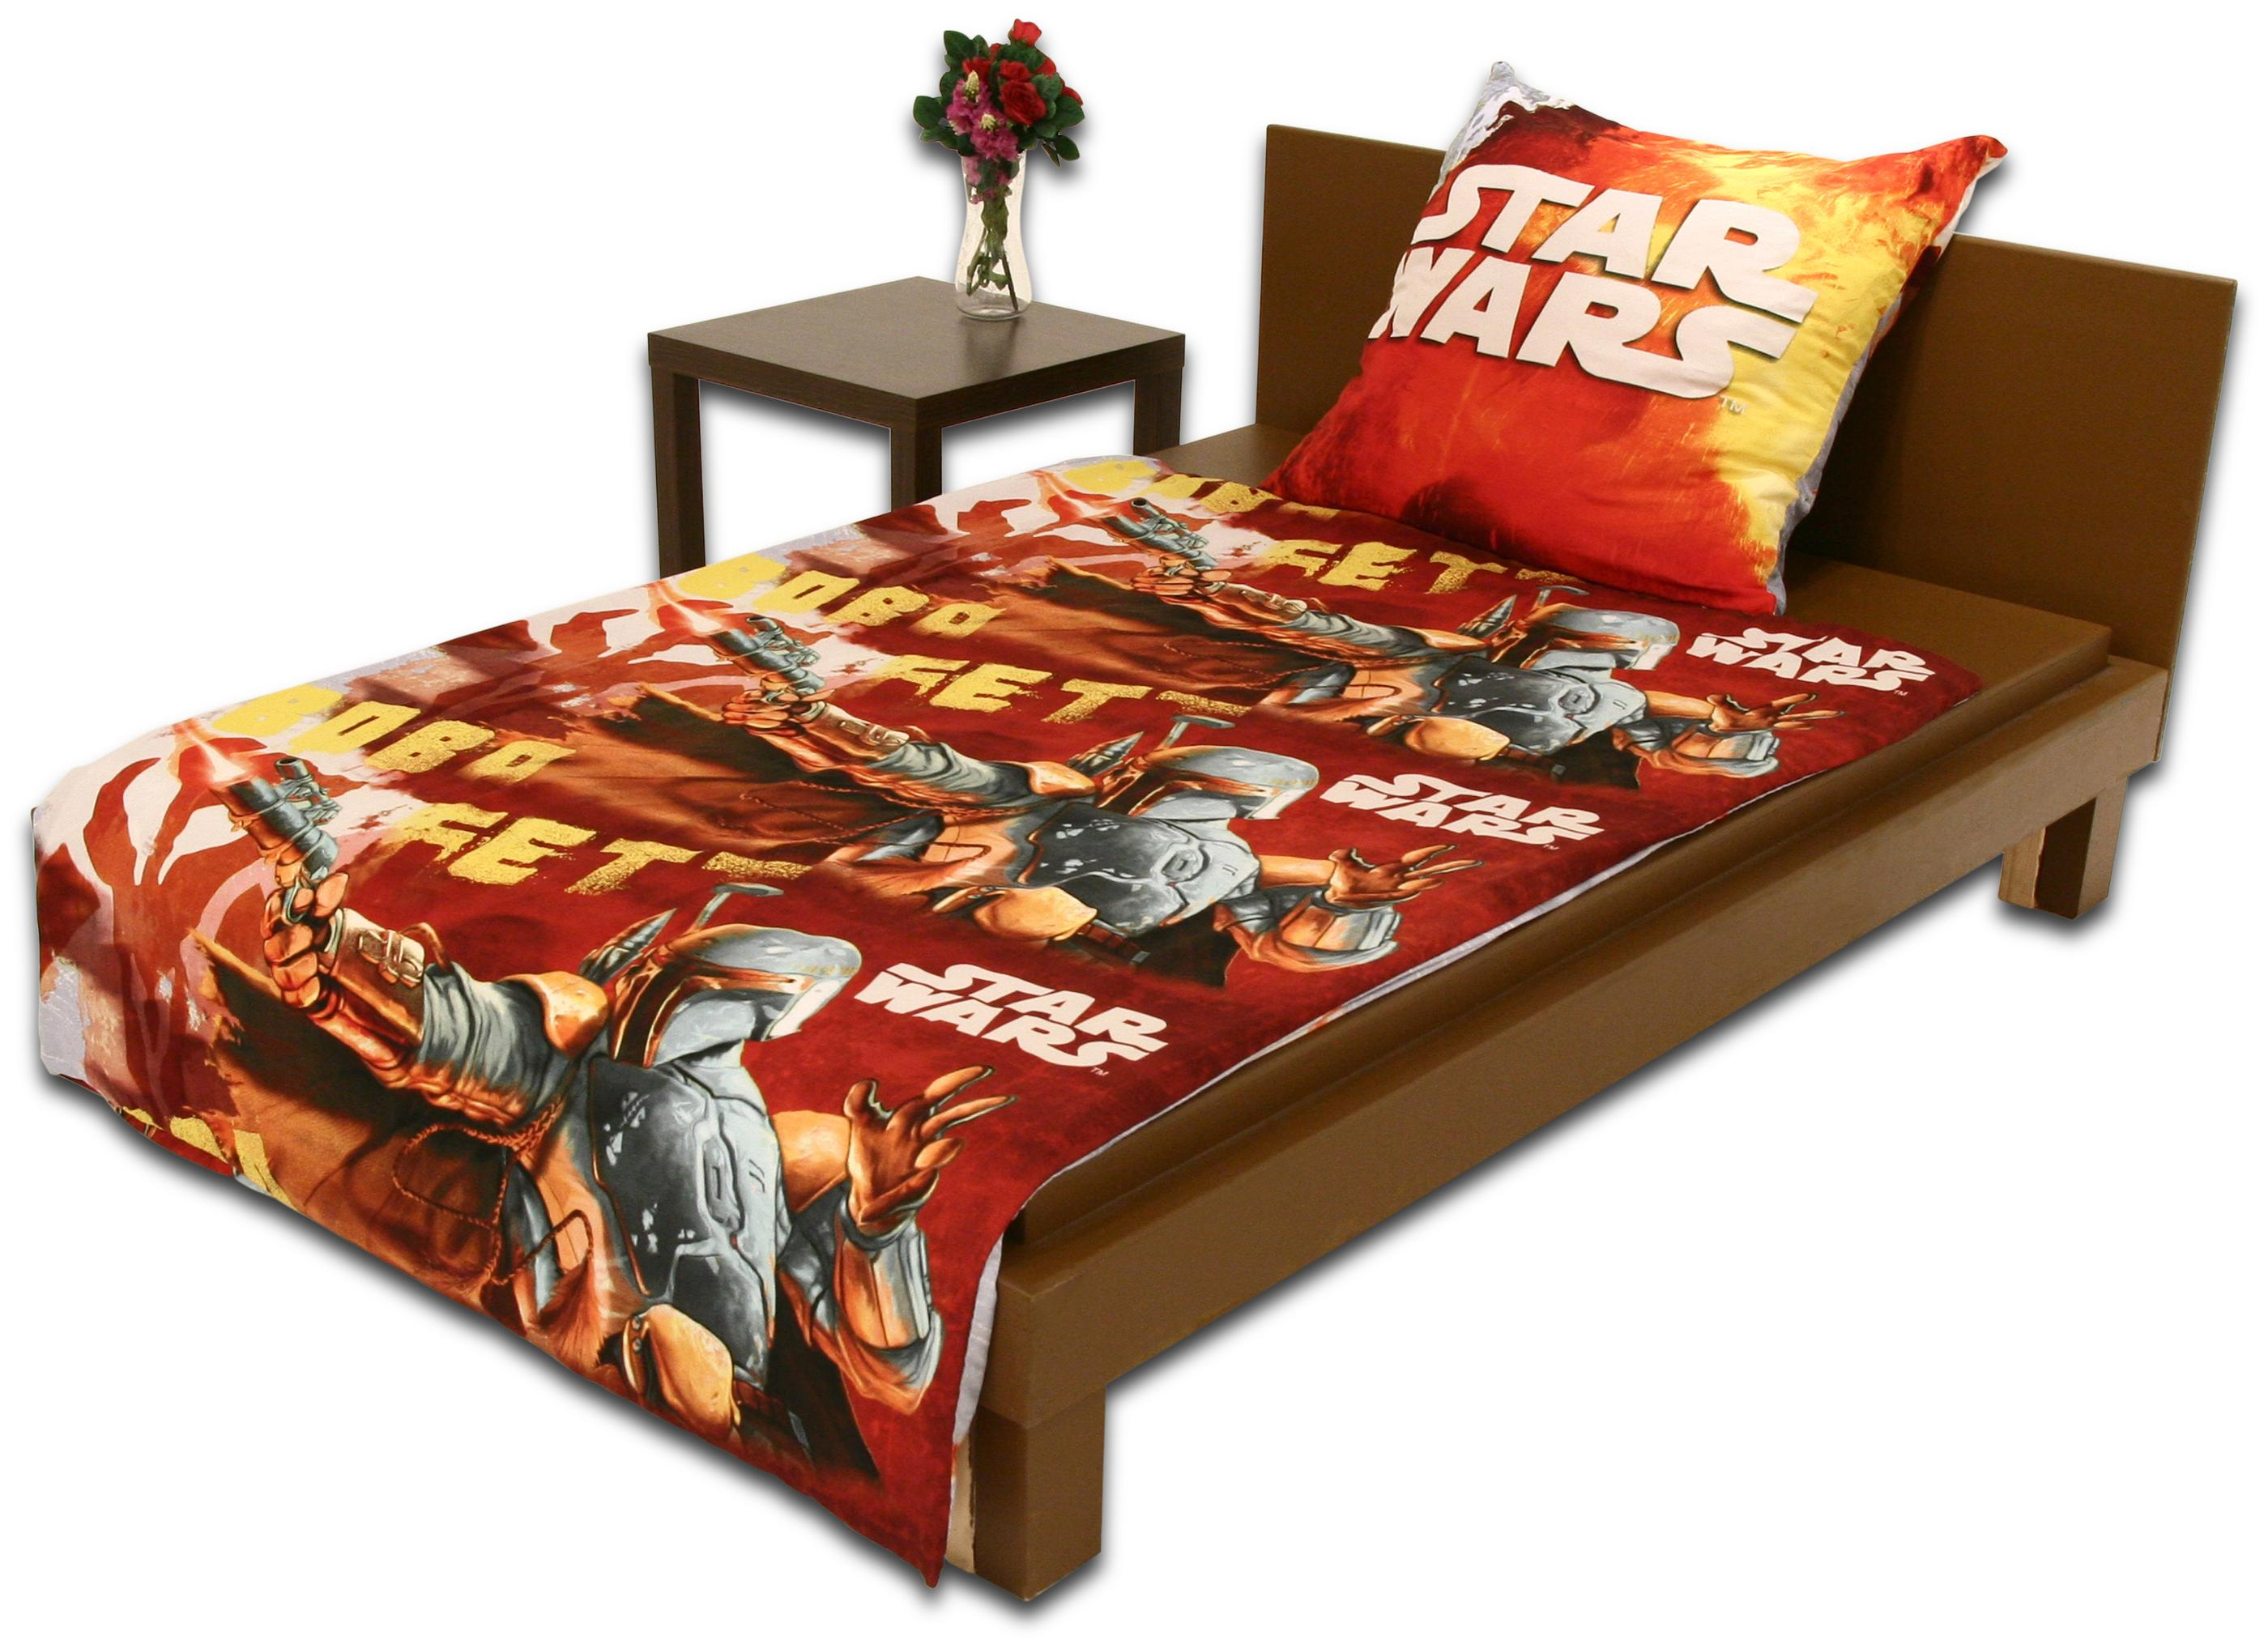 star wars bettw sche 2tlg bettw sche. Black Bedroom Furniture Sets. Home Design Ideas